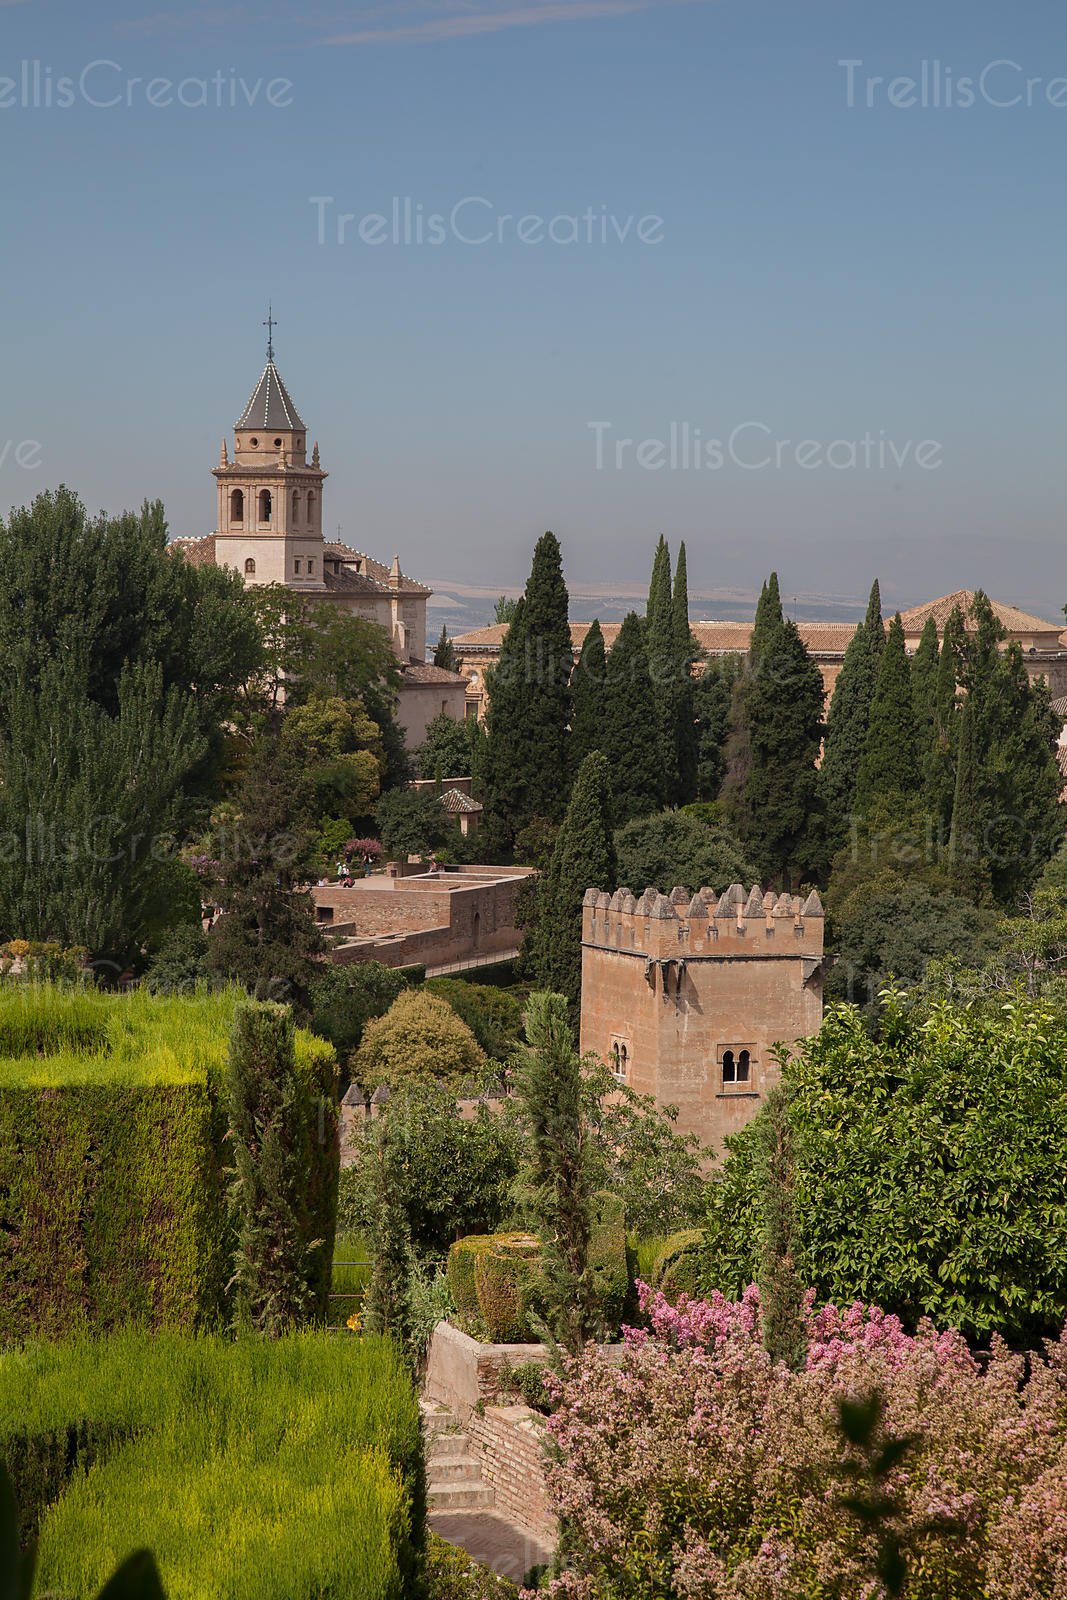 View over the gardens and Church of Santa Maria de la Alhambra